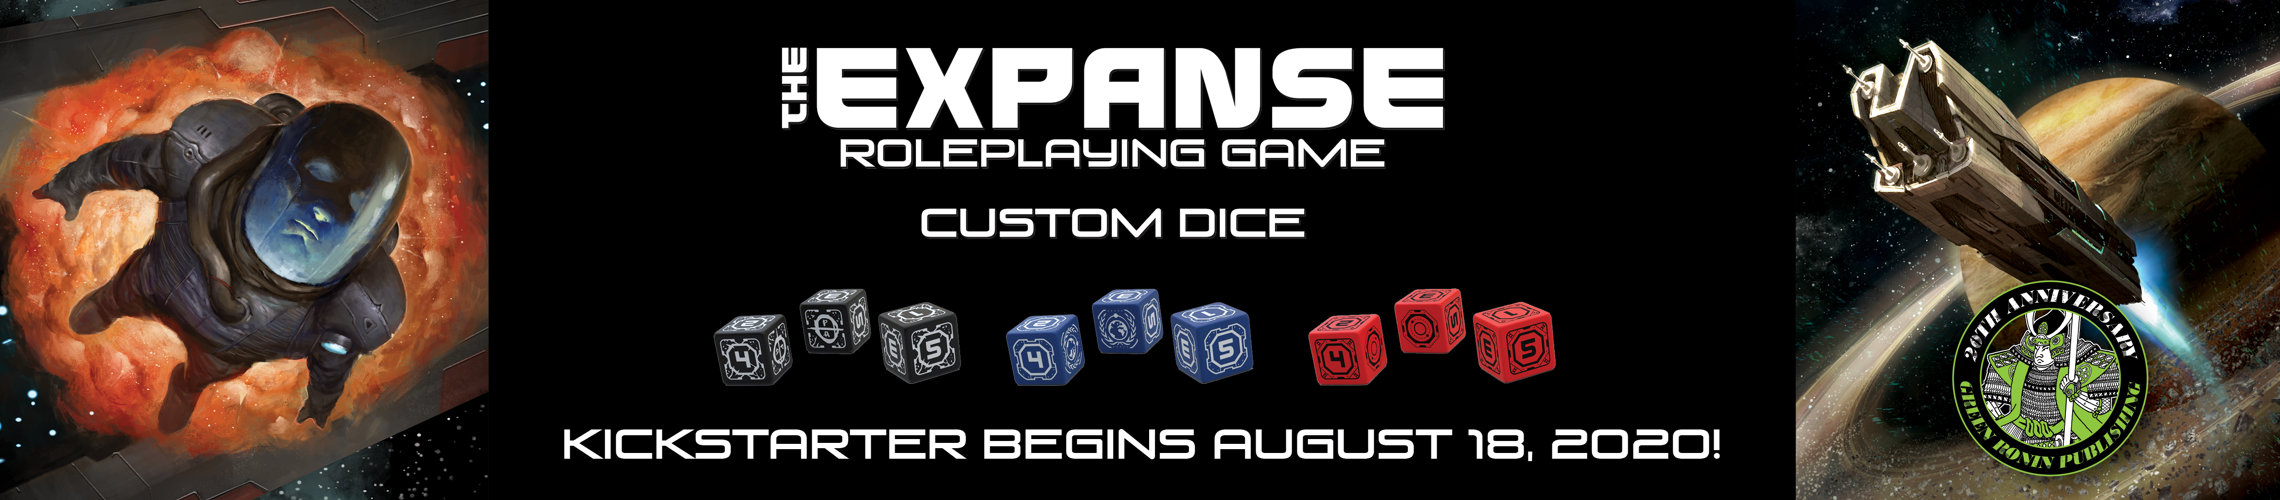 The Expanse RPG Custom Dice Kickstarter Begins 18 August 2020